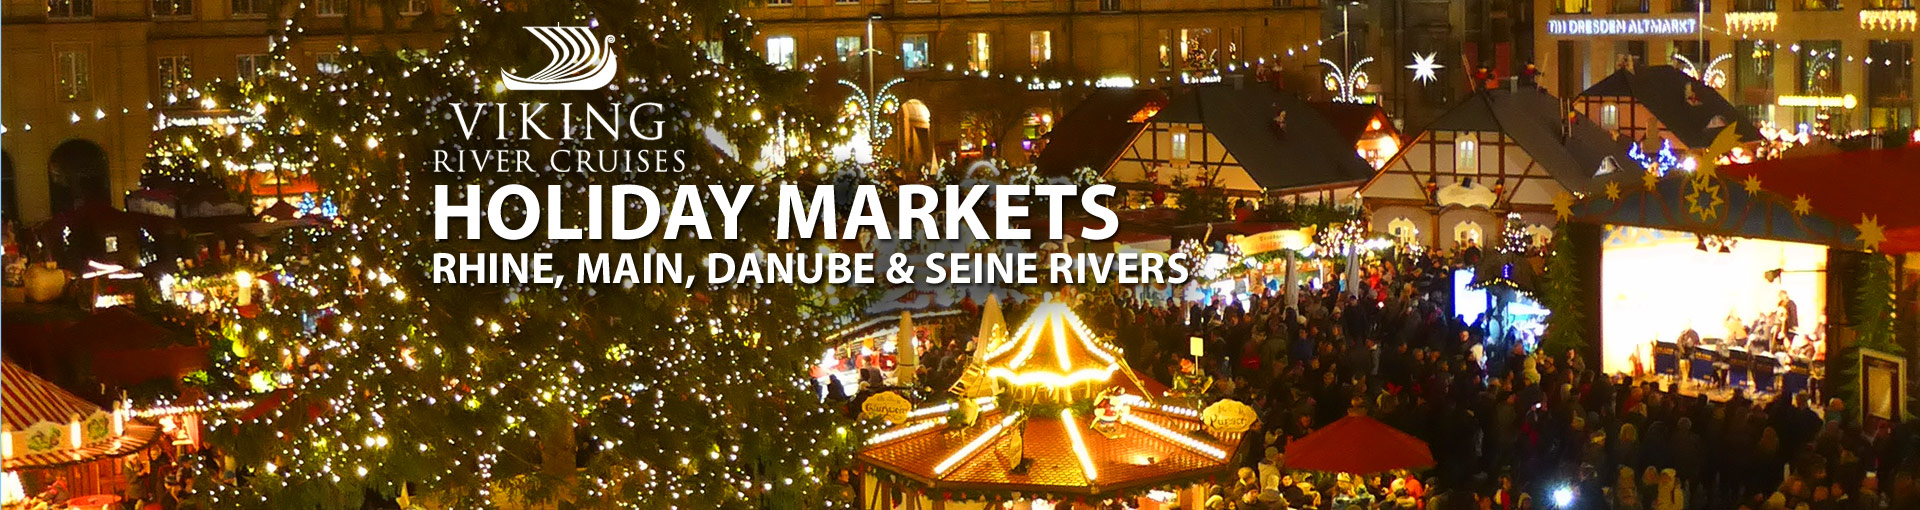 Viking River Cruises Christmas Markets